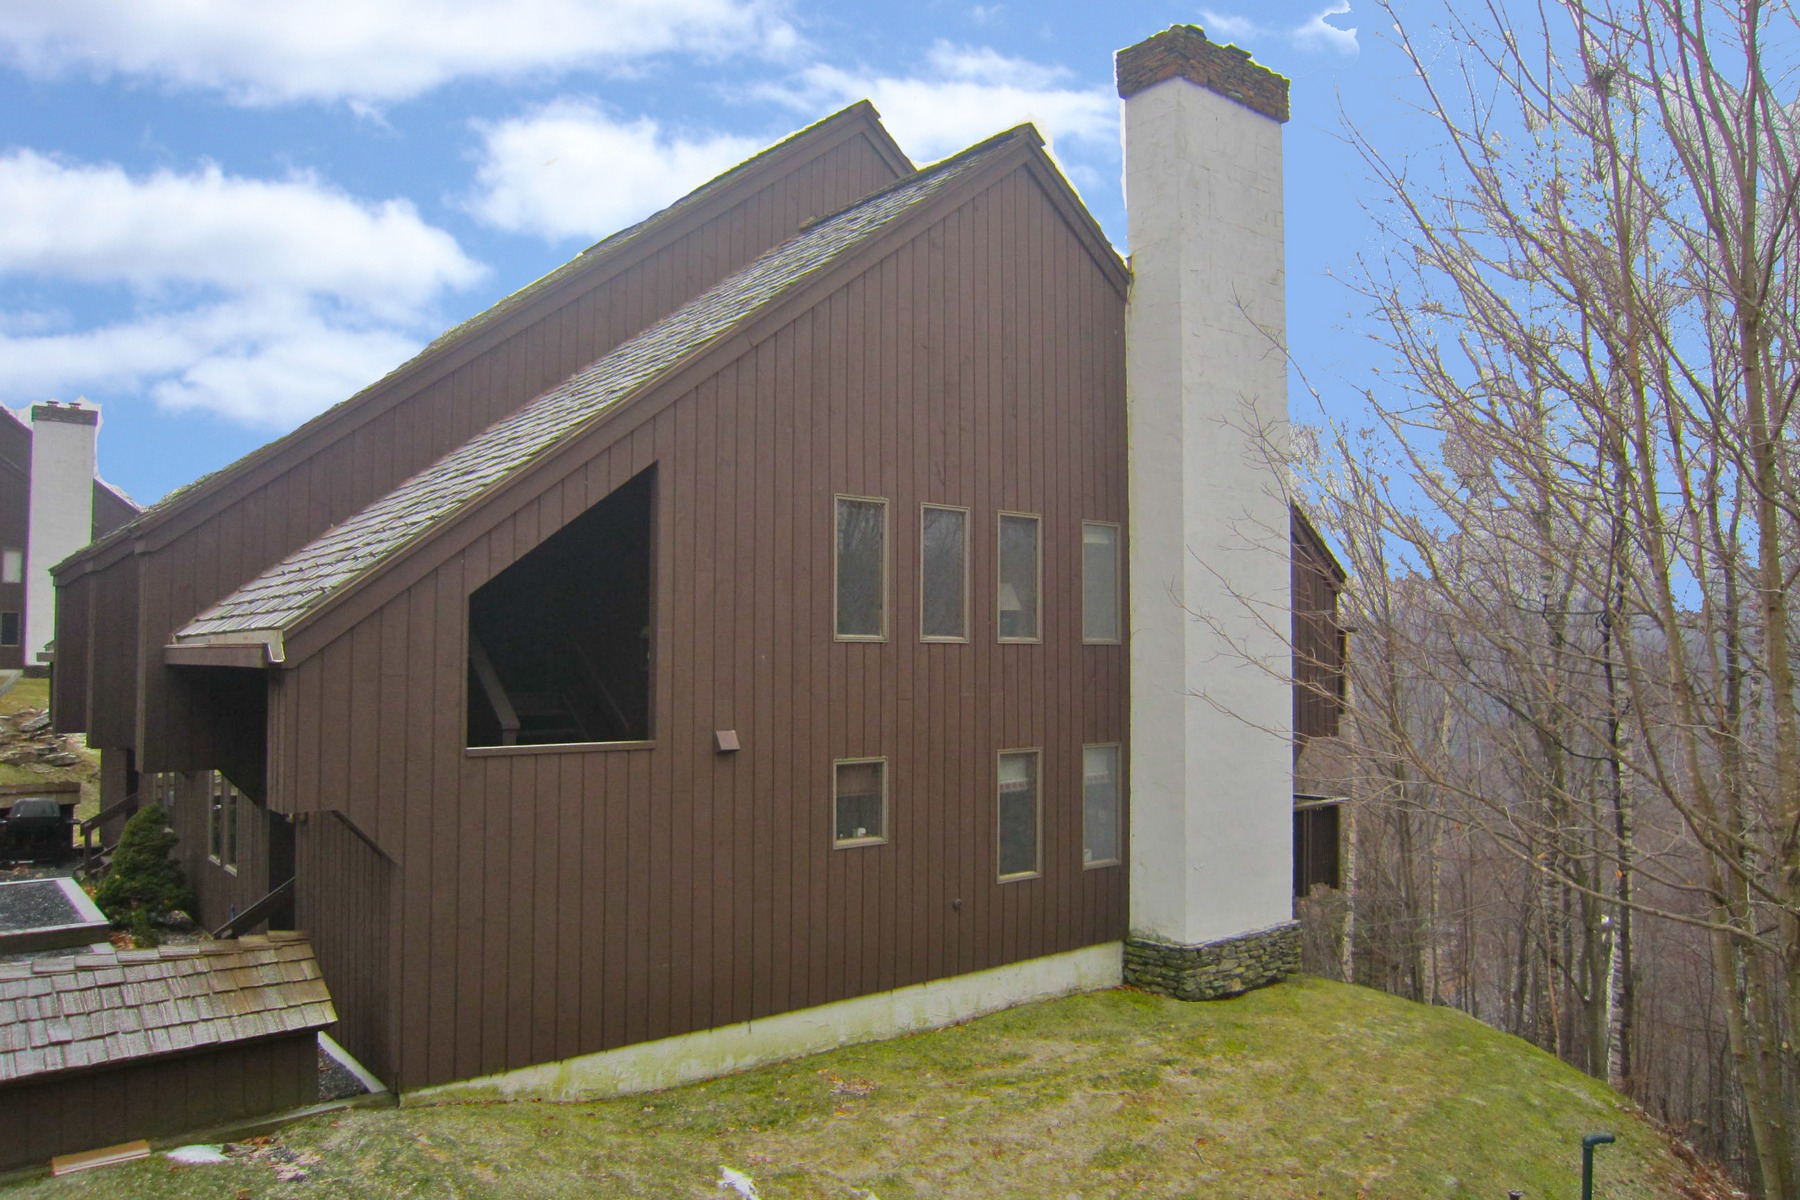 Condominium for Sale at Exclusive Hawk Resort Condo 145 Blueberry Ridge Road Unit 49 Plymouth, Vermont 05056 United States